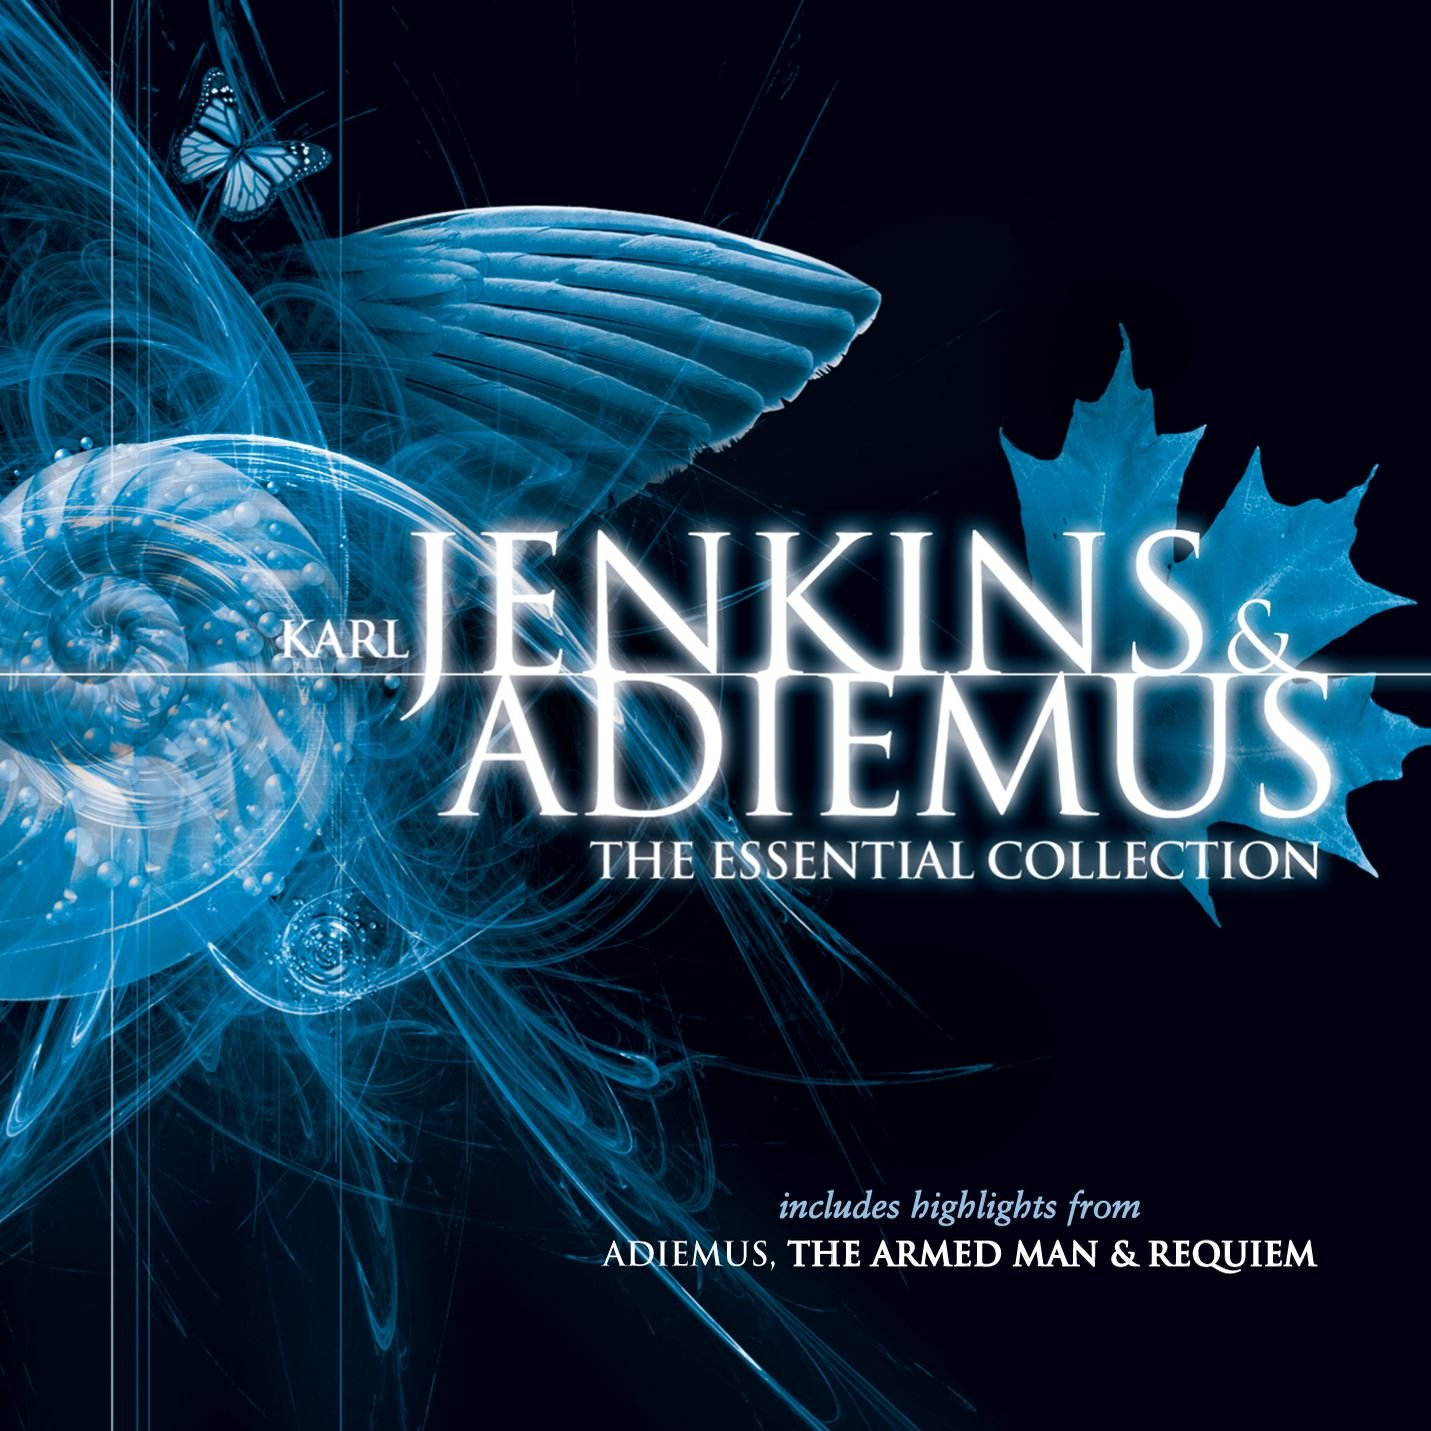 Karl Jenkins & Adiemus: The Essential Collection by EMI Classics